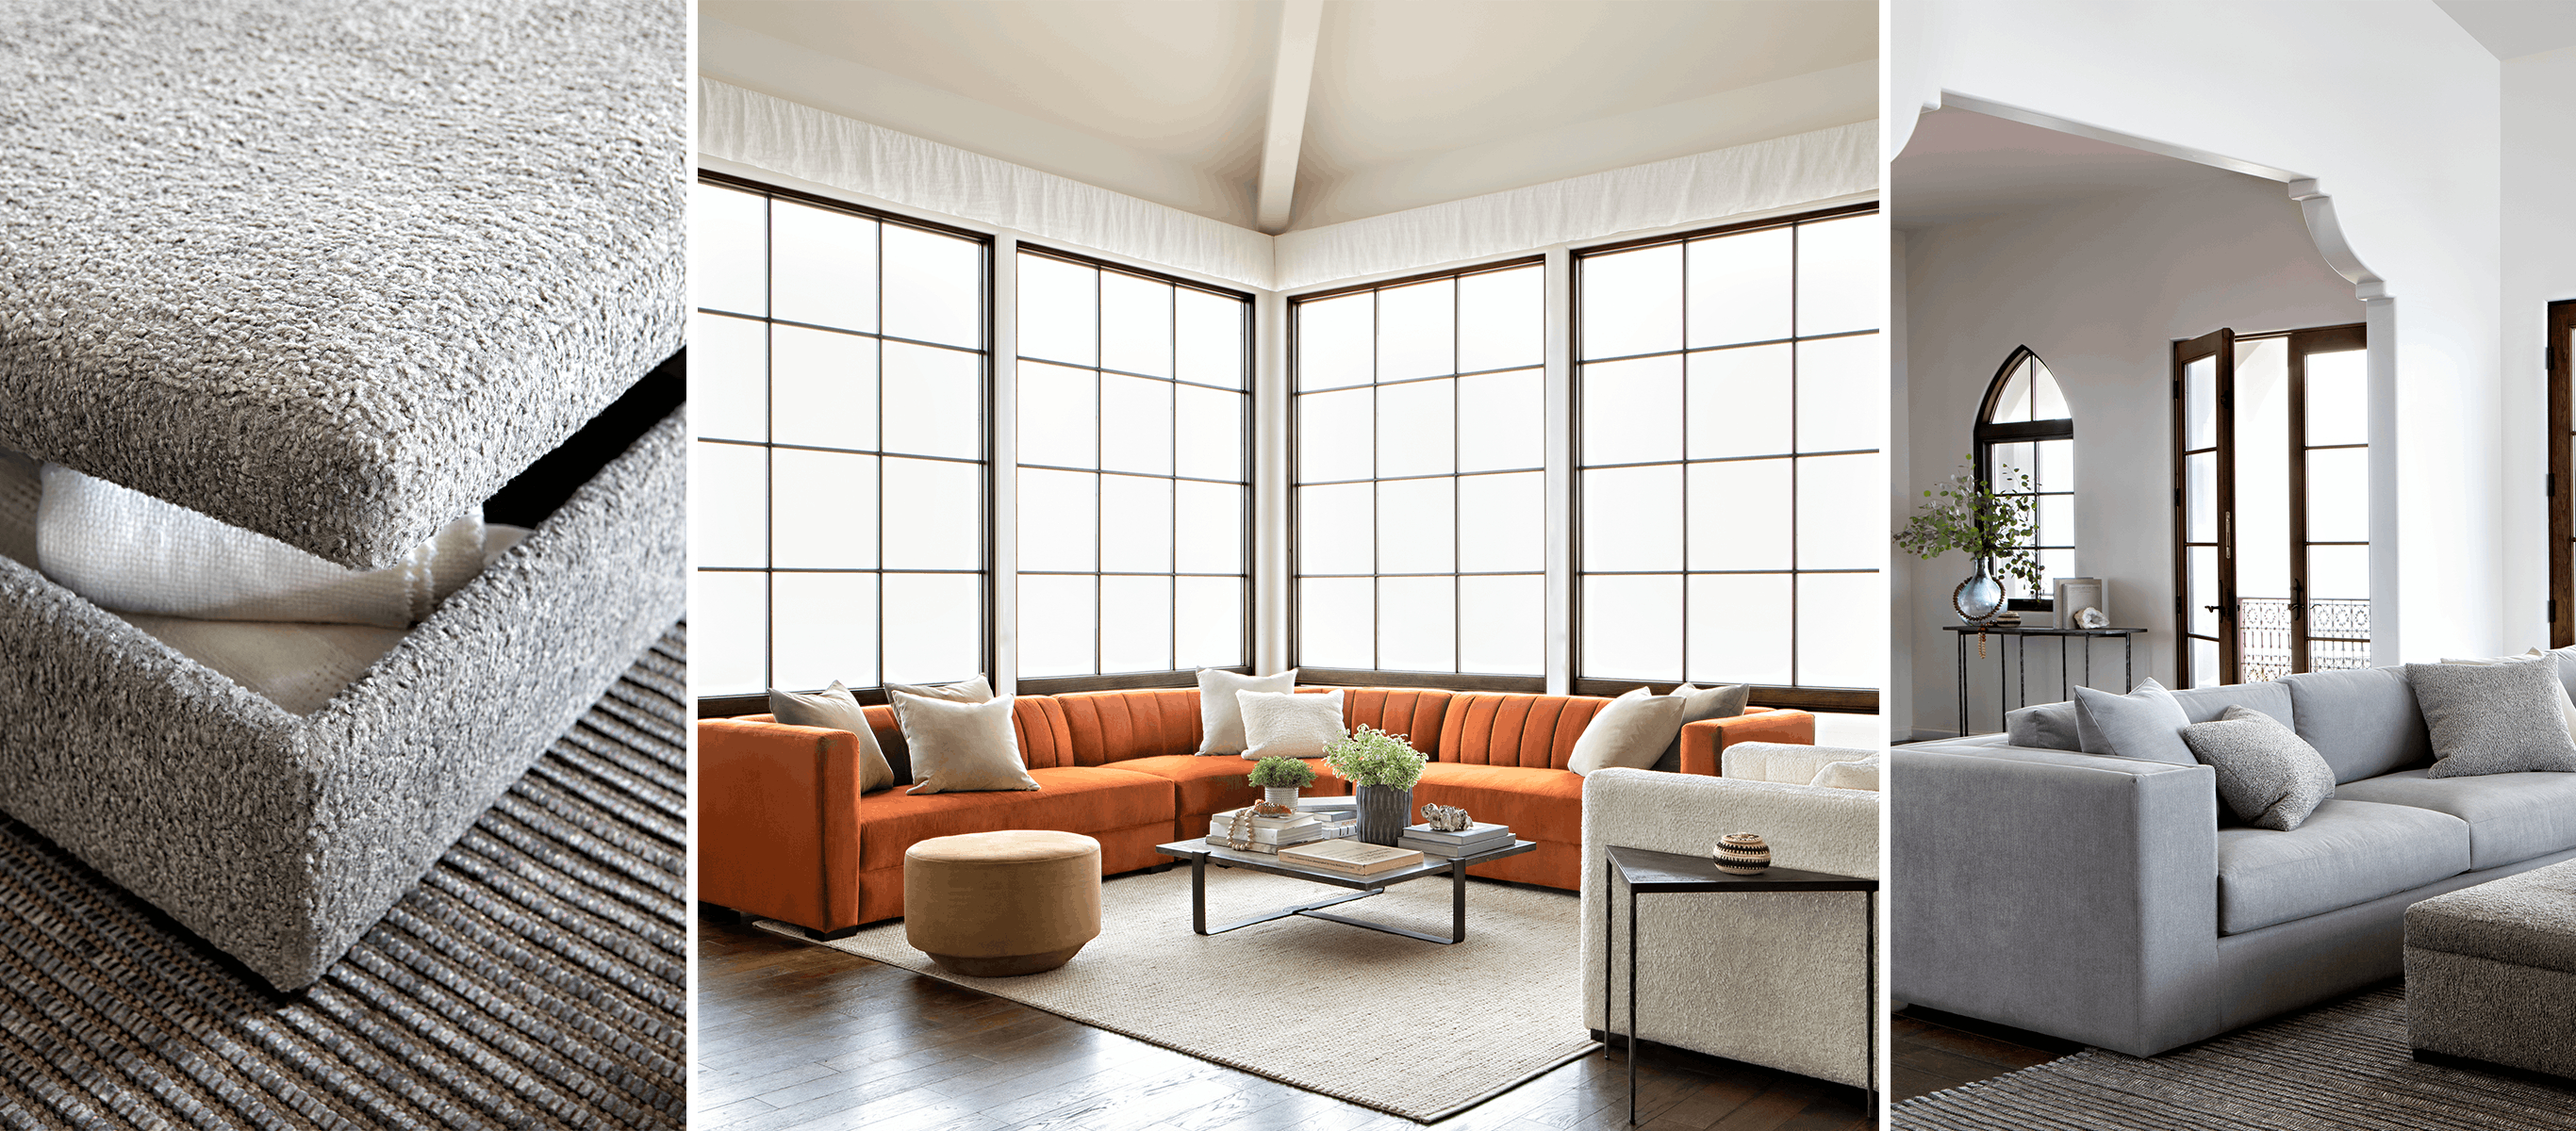 Nate Berkus Just Launched A Home Collection With Hubby Jeremiah Throughout Ames Arm Sofa Chairs By Nate Berkus And Jeremiah Brent (View 24 of 25)